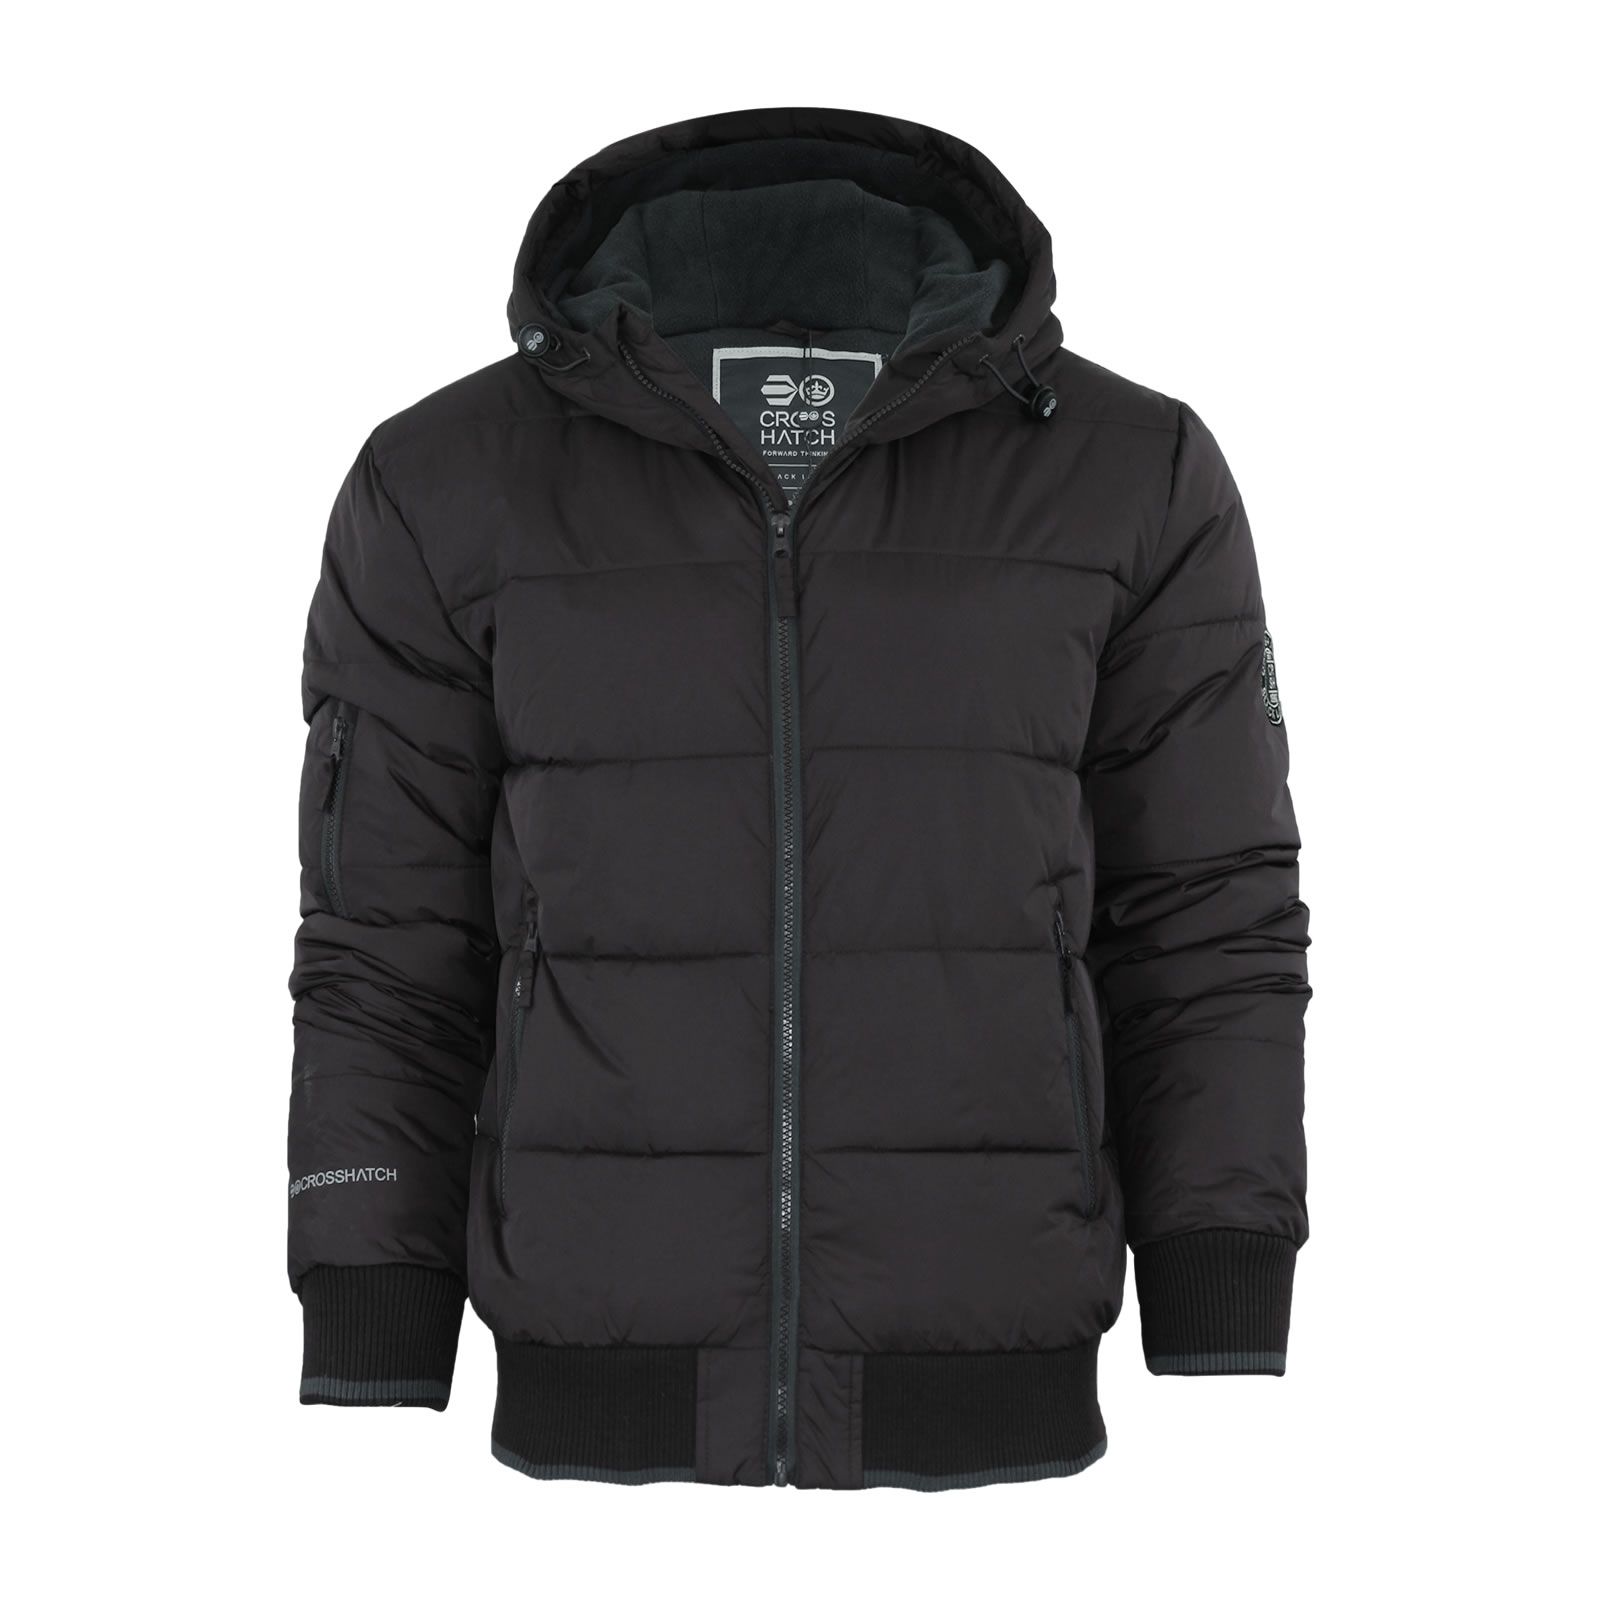 Find great deals on eBay for mens hooded winter jackets. Shop with confidence.